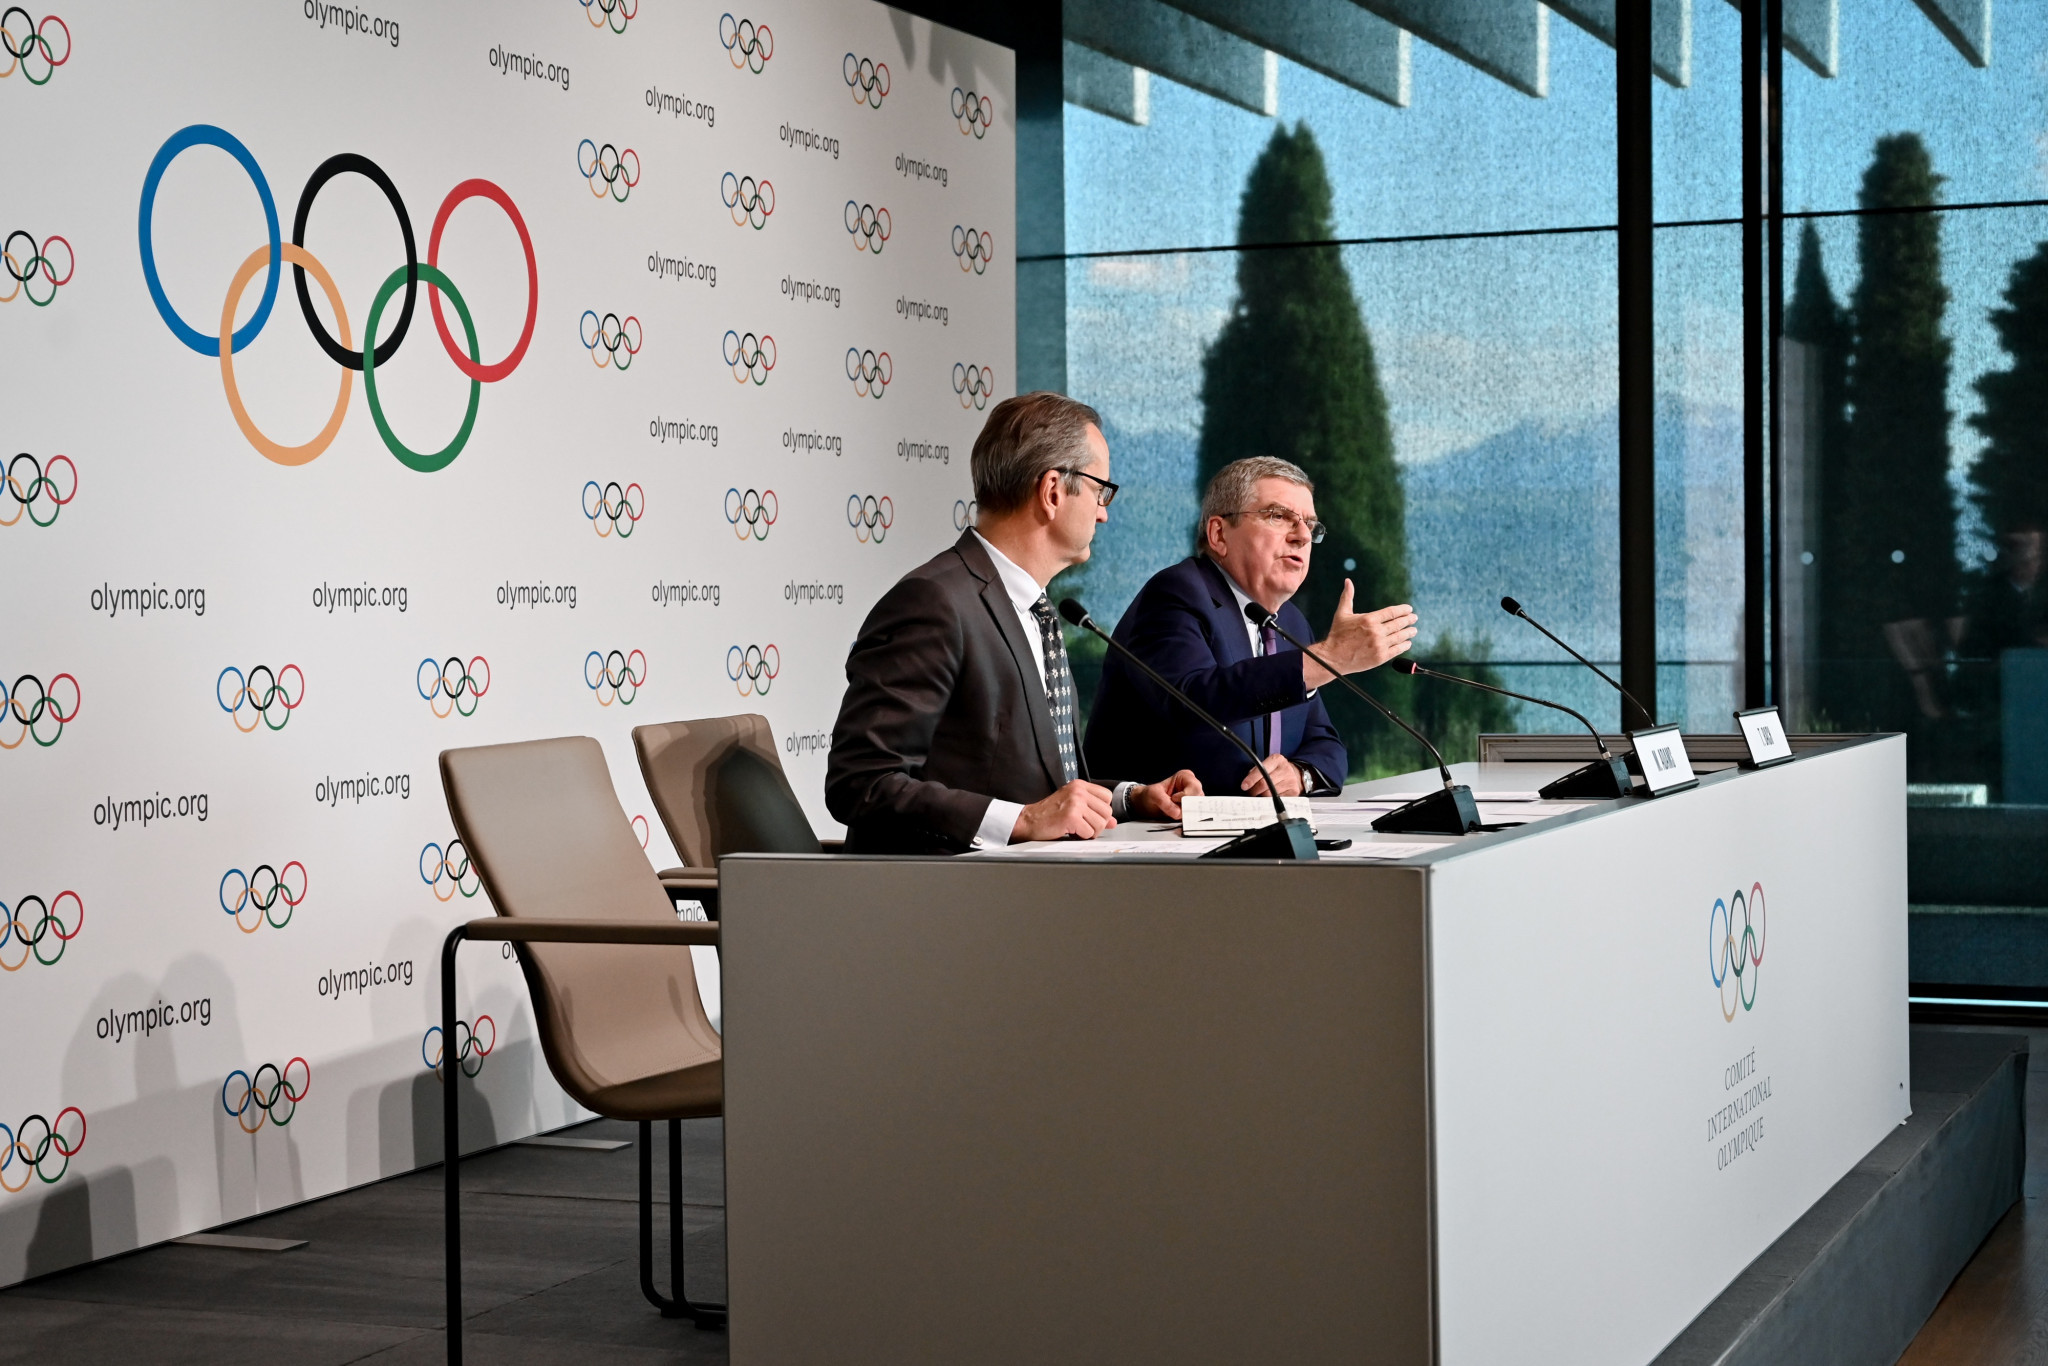 IOC President Thomas Bach reiterated his belief that the organisation should take a more targeted approach to the candidature process to avoid